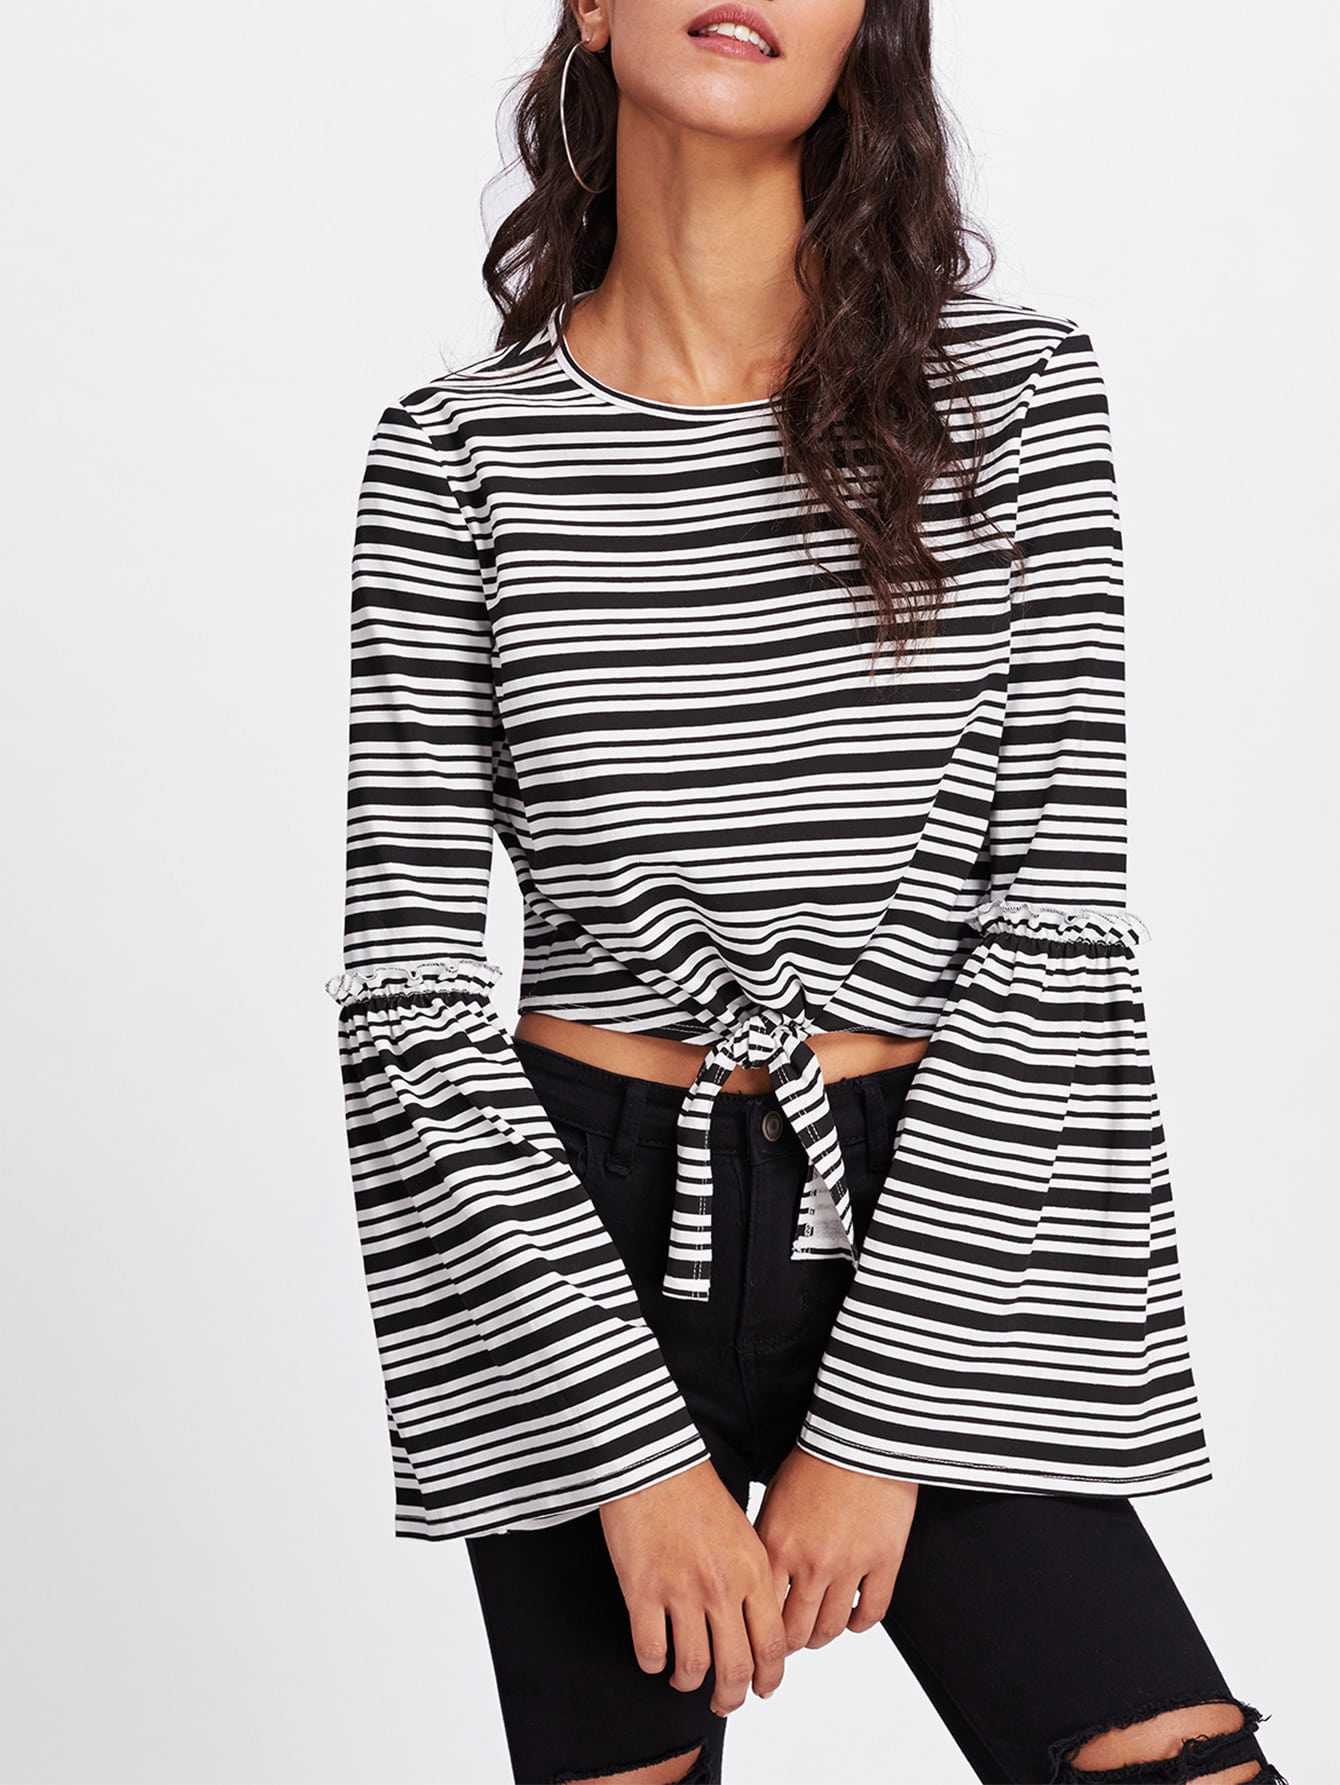 Frilled Detail Fluted Sleeve Knot Crop Top dot mesh overlay frill detail fluted cuff top